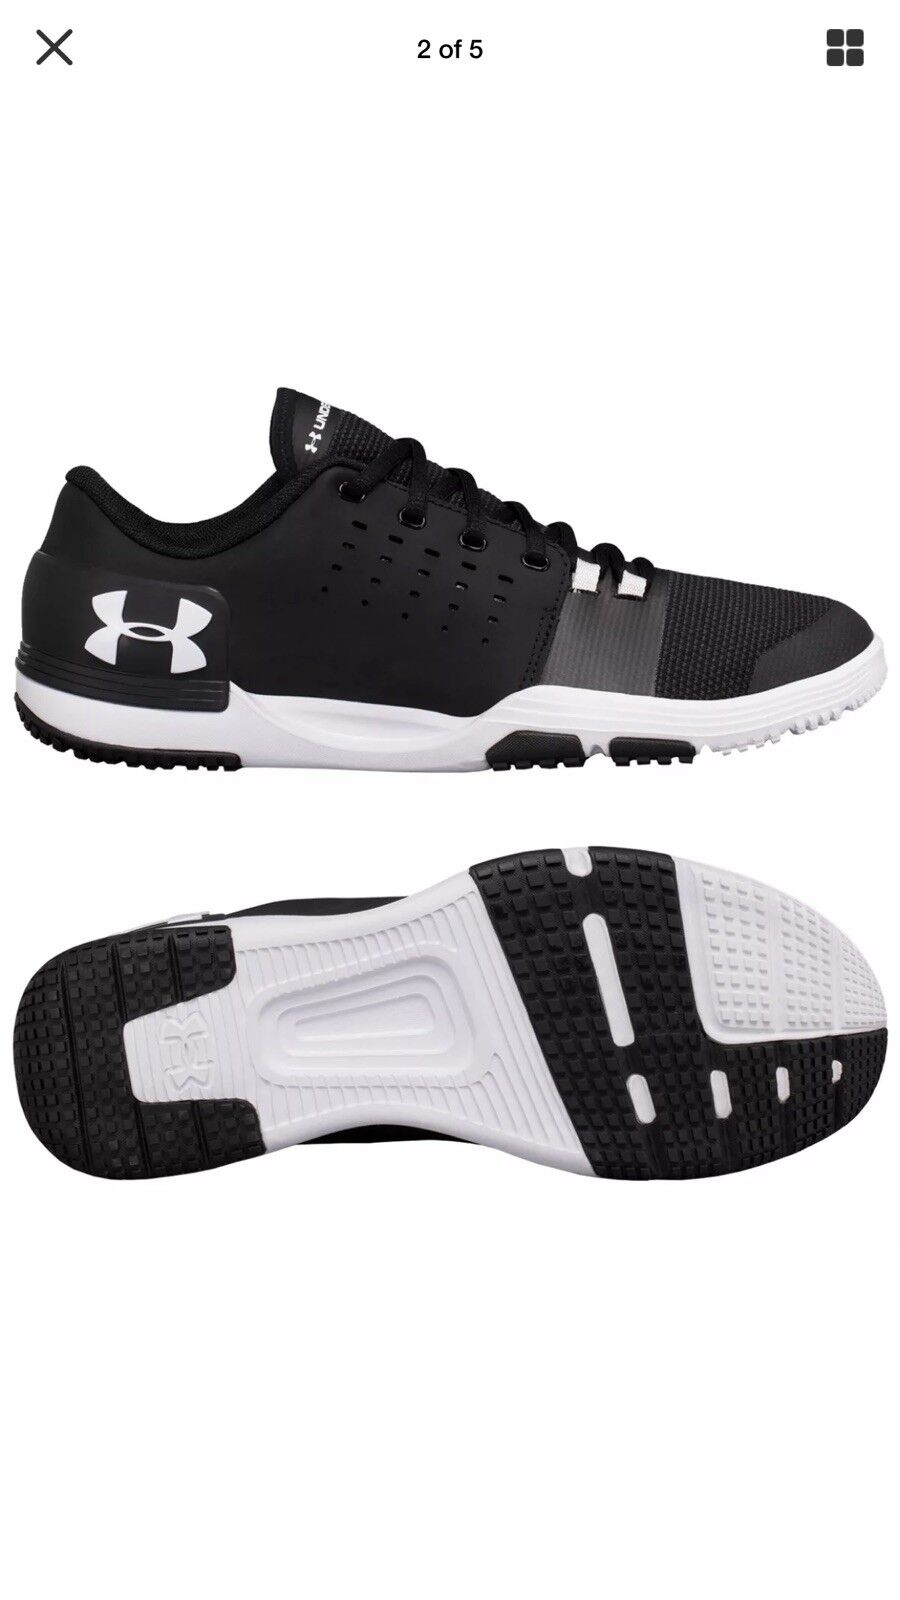 Under Armour Homme UA Limitless TR 3.0 Training Chaussures Noir10 used once